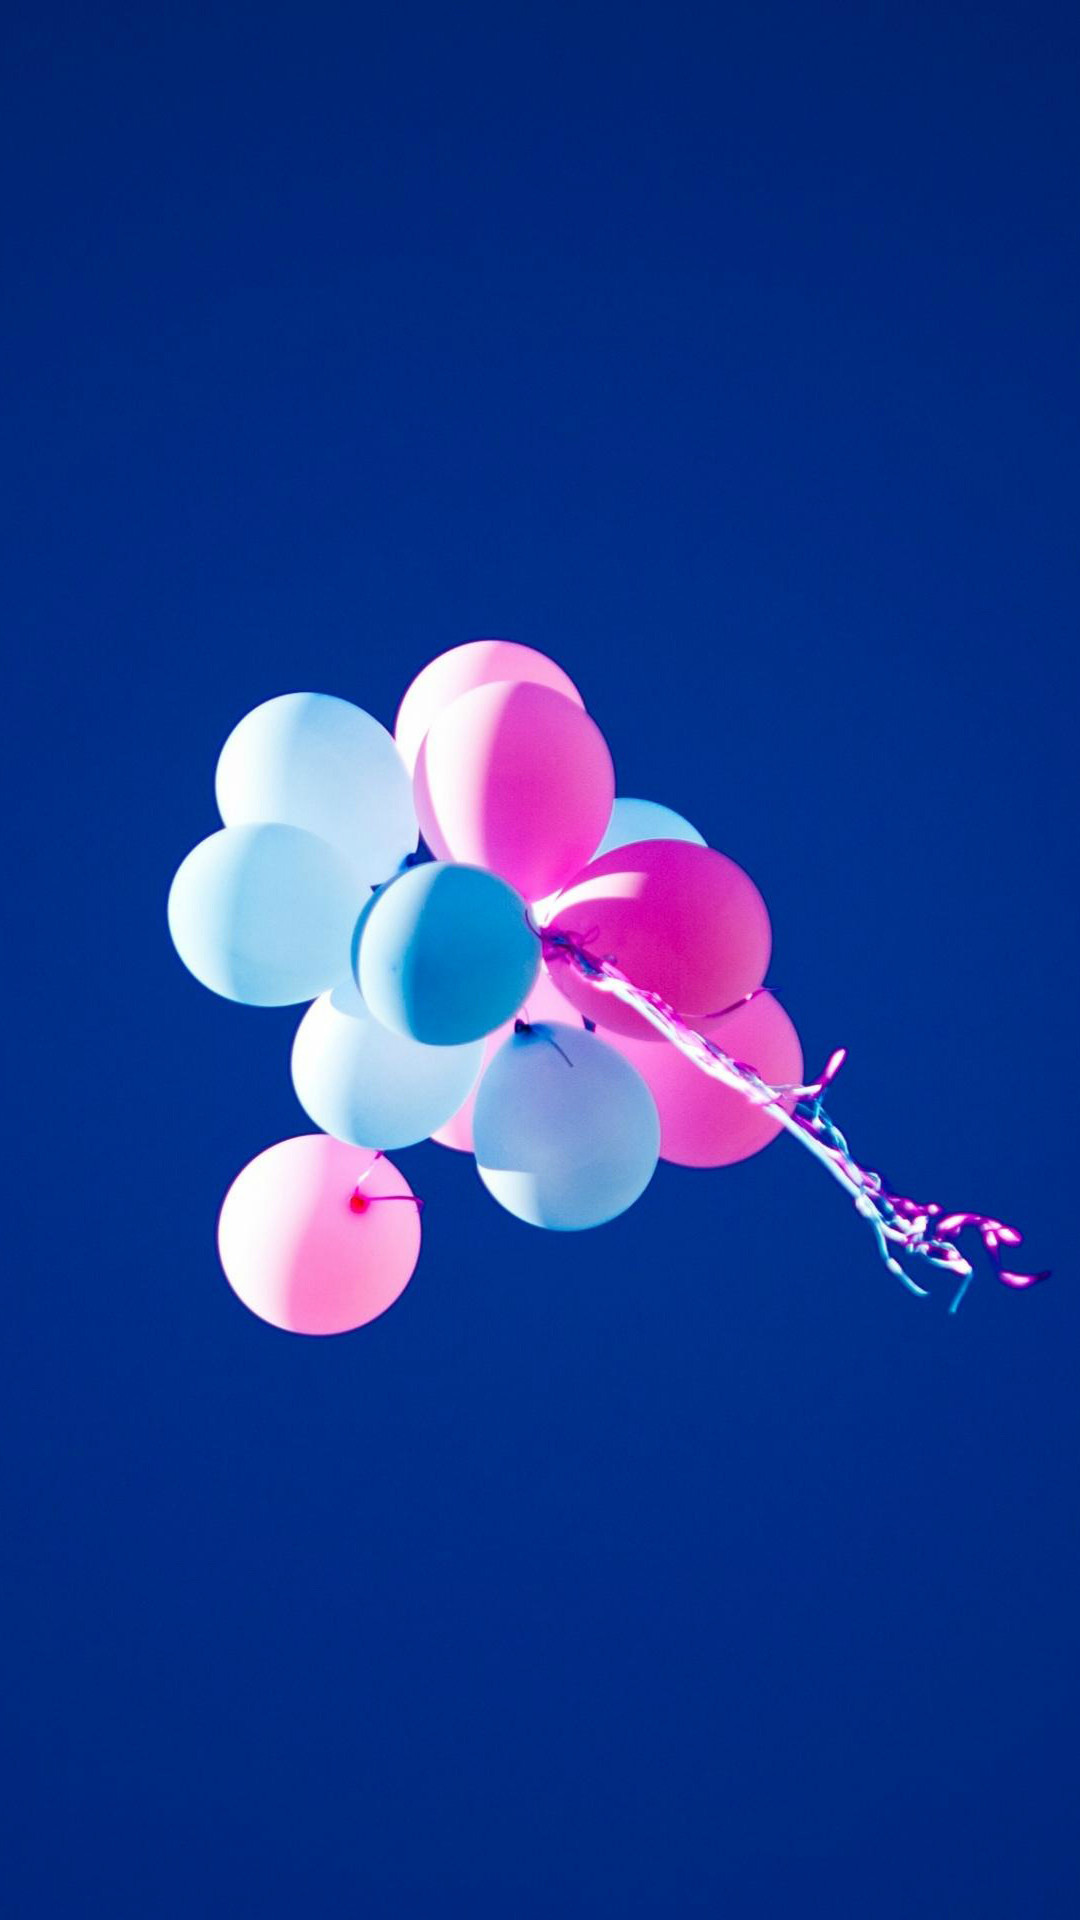 1080x1920 Flying Balloons In Blue Sky iPhone 8 wallpaper